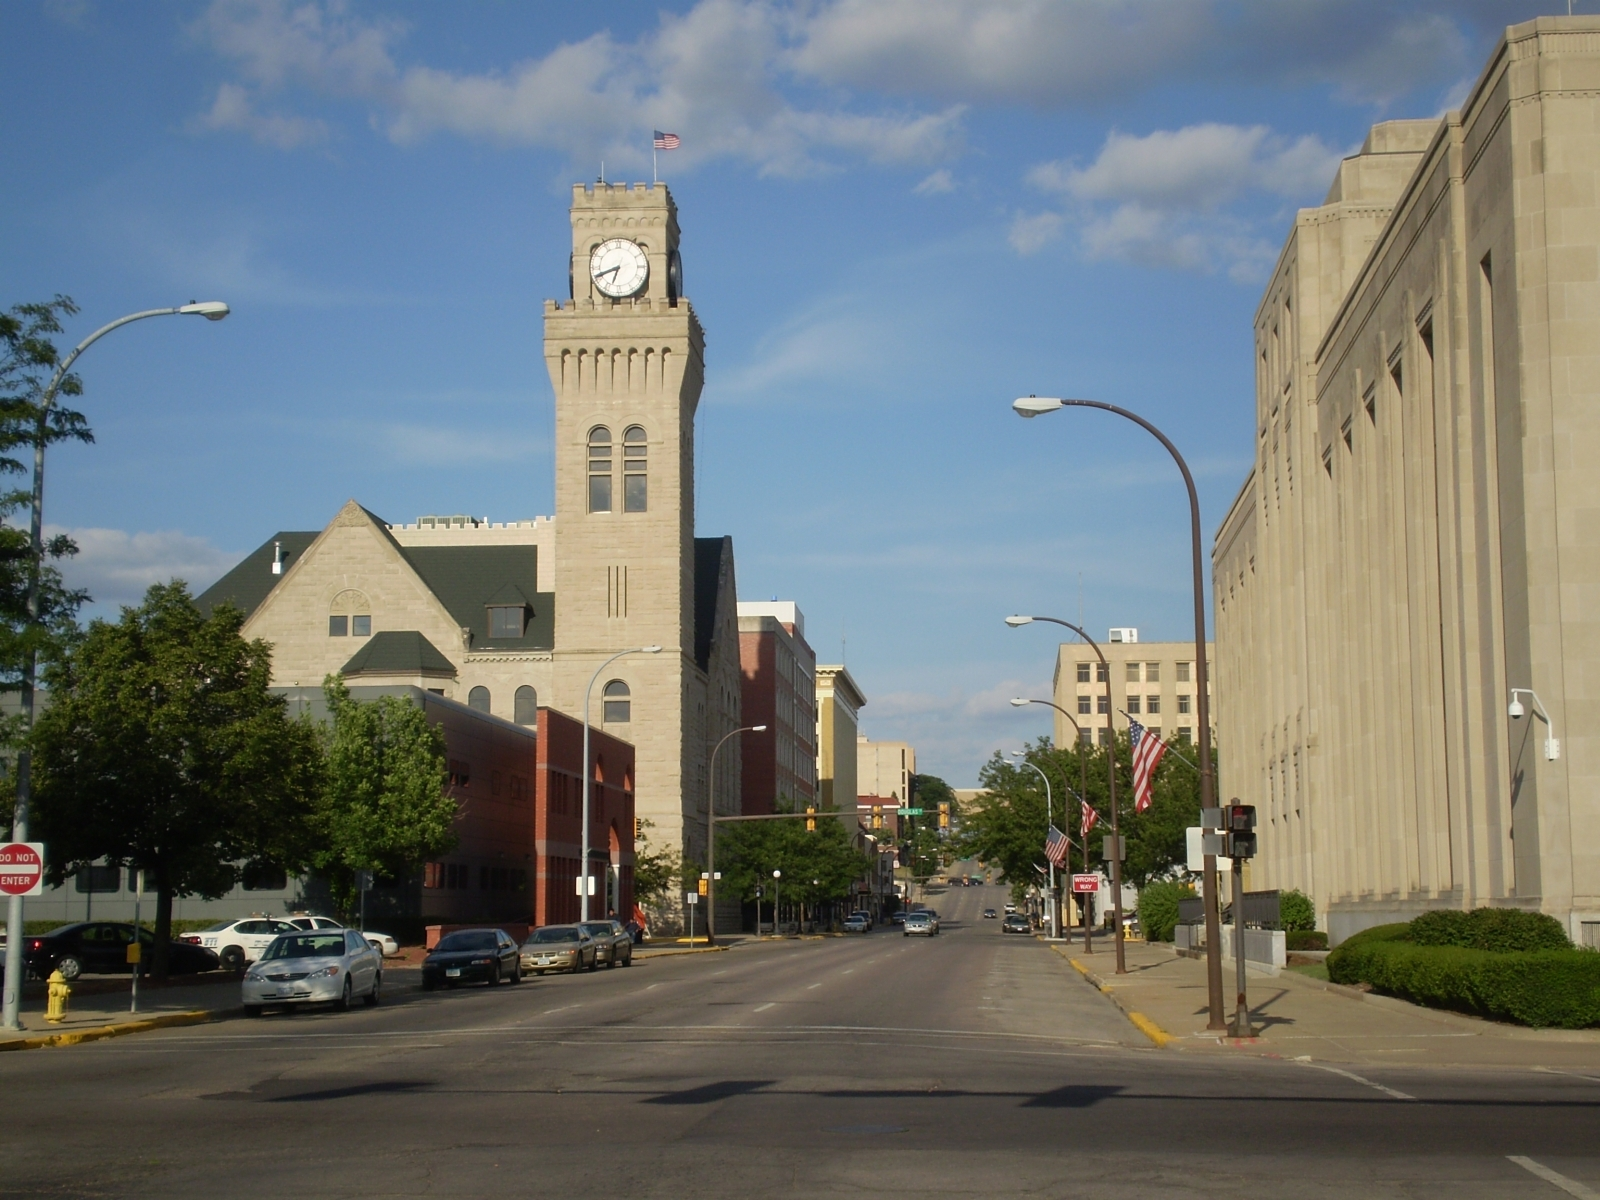 downtown-Sioux-City.jpg?mtime=20200115142550#asset:107691